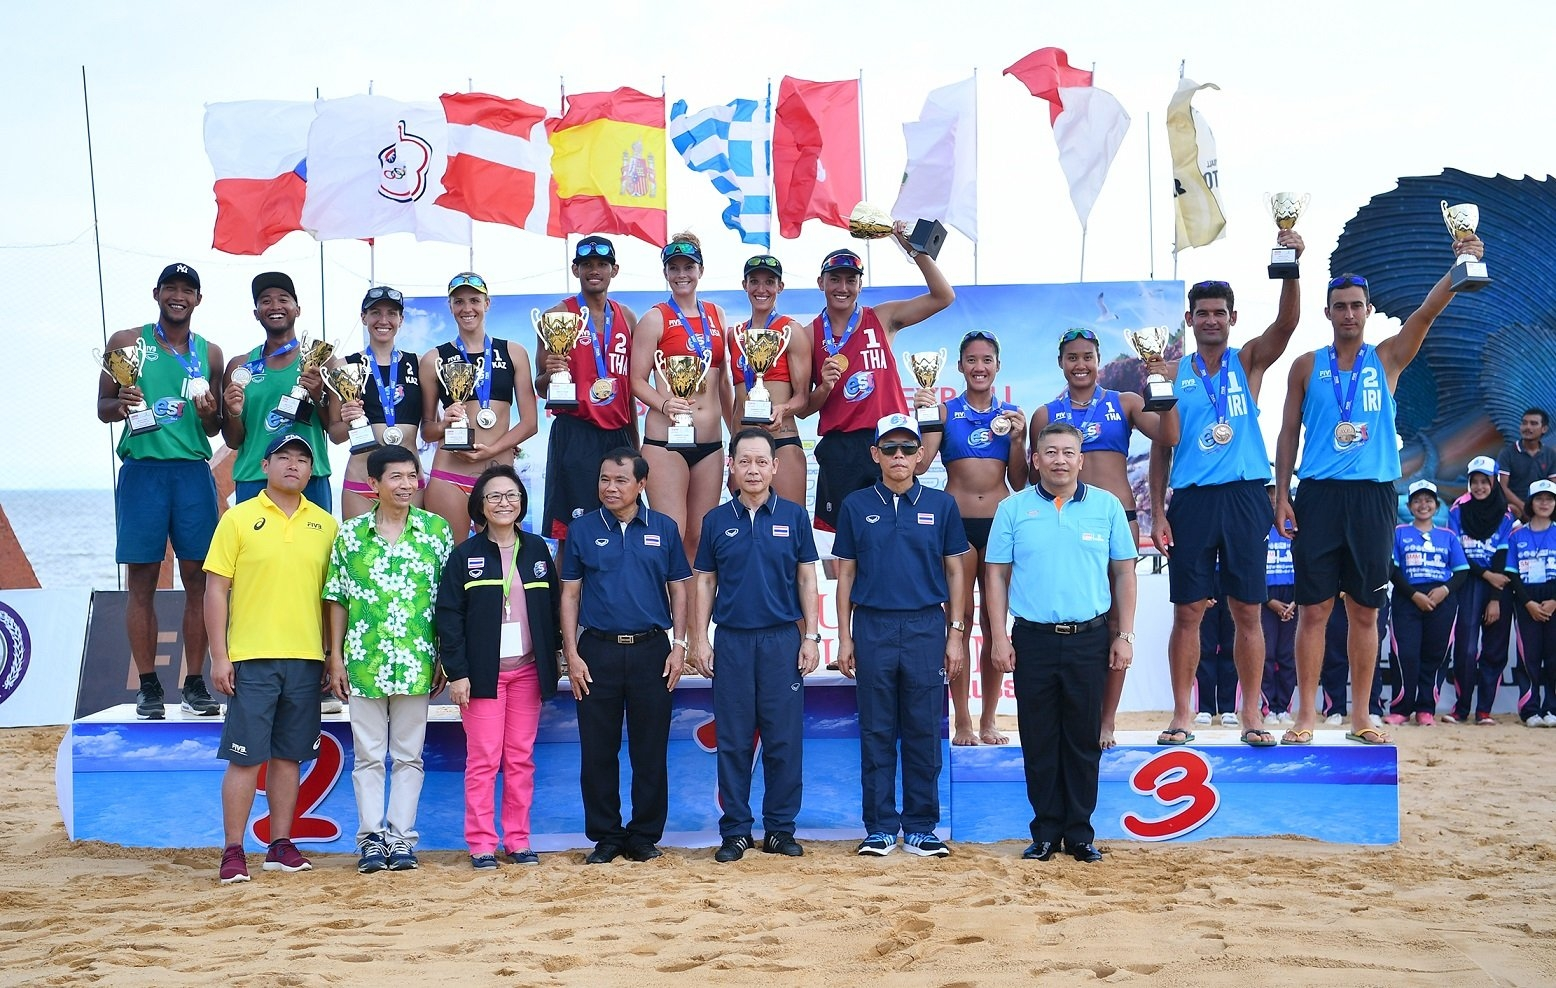 The medalists of the tournament in Thailand after the awarding ceremony (Photocredit: FIVB)